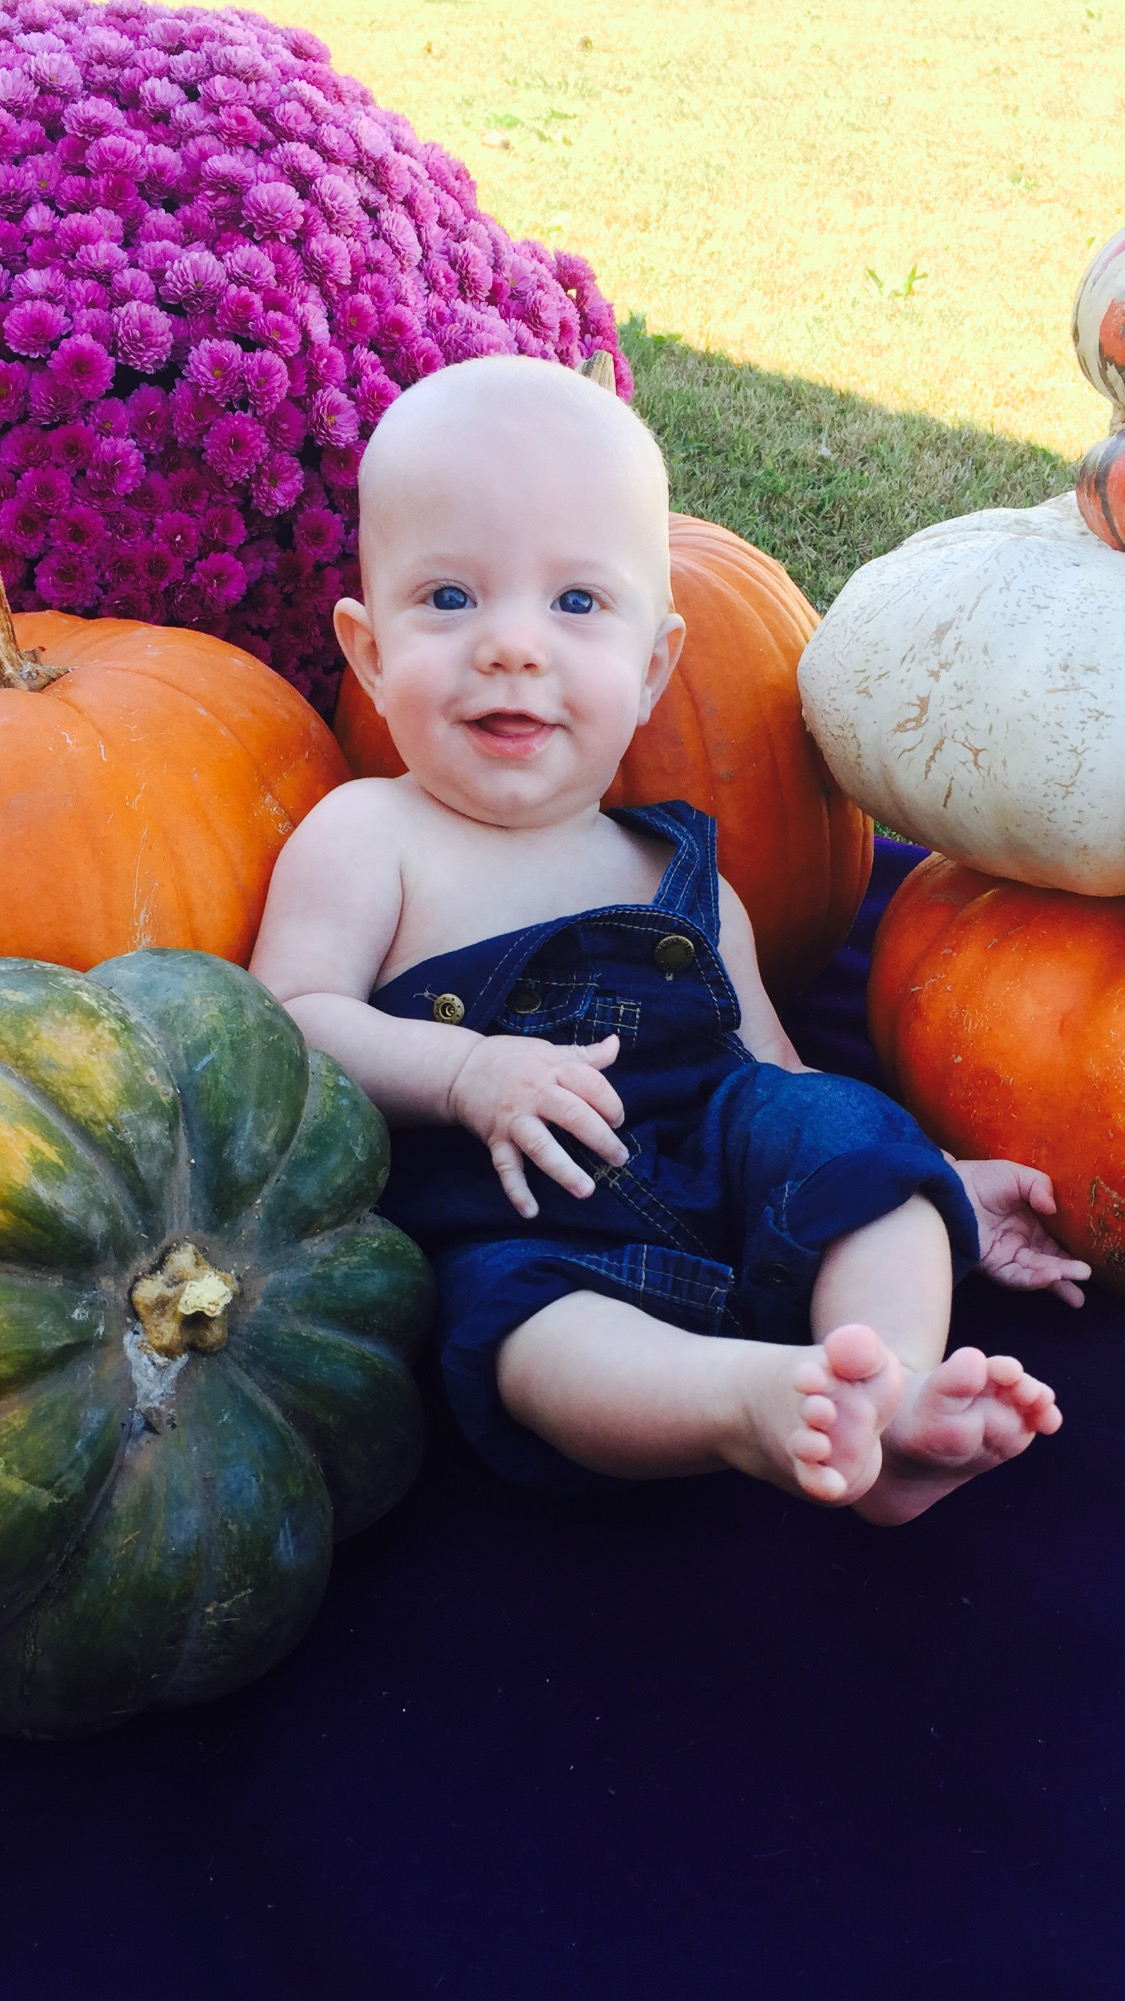 Baby Reed Rainwater, 5 months old from Elkins, AR.